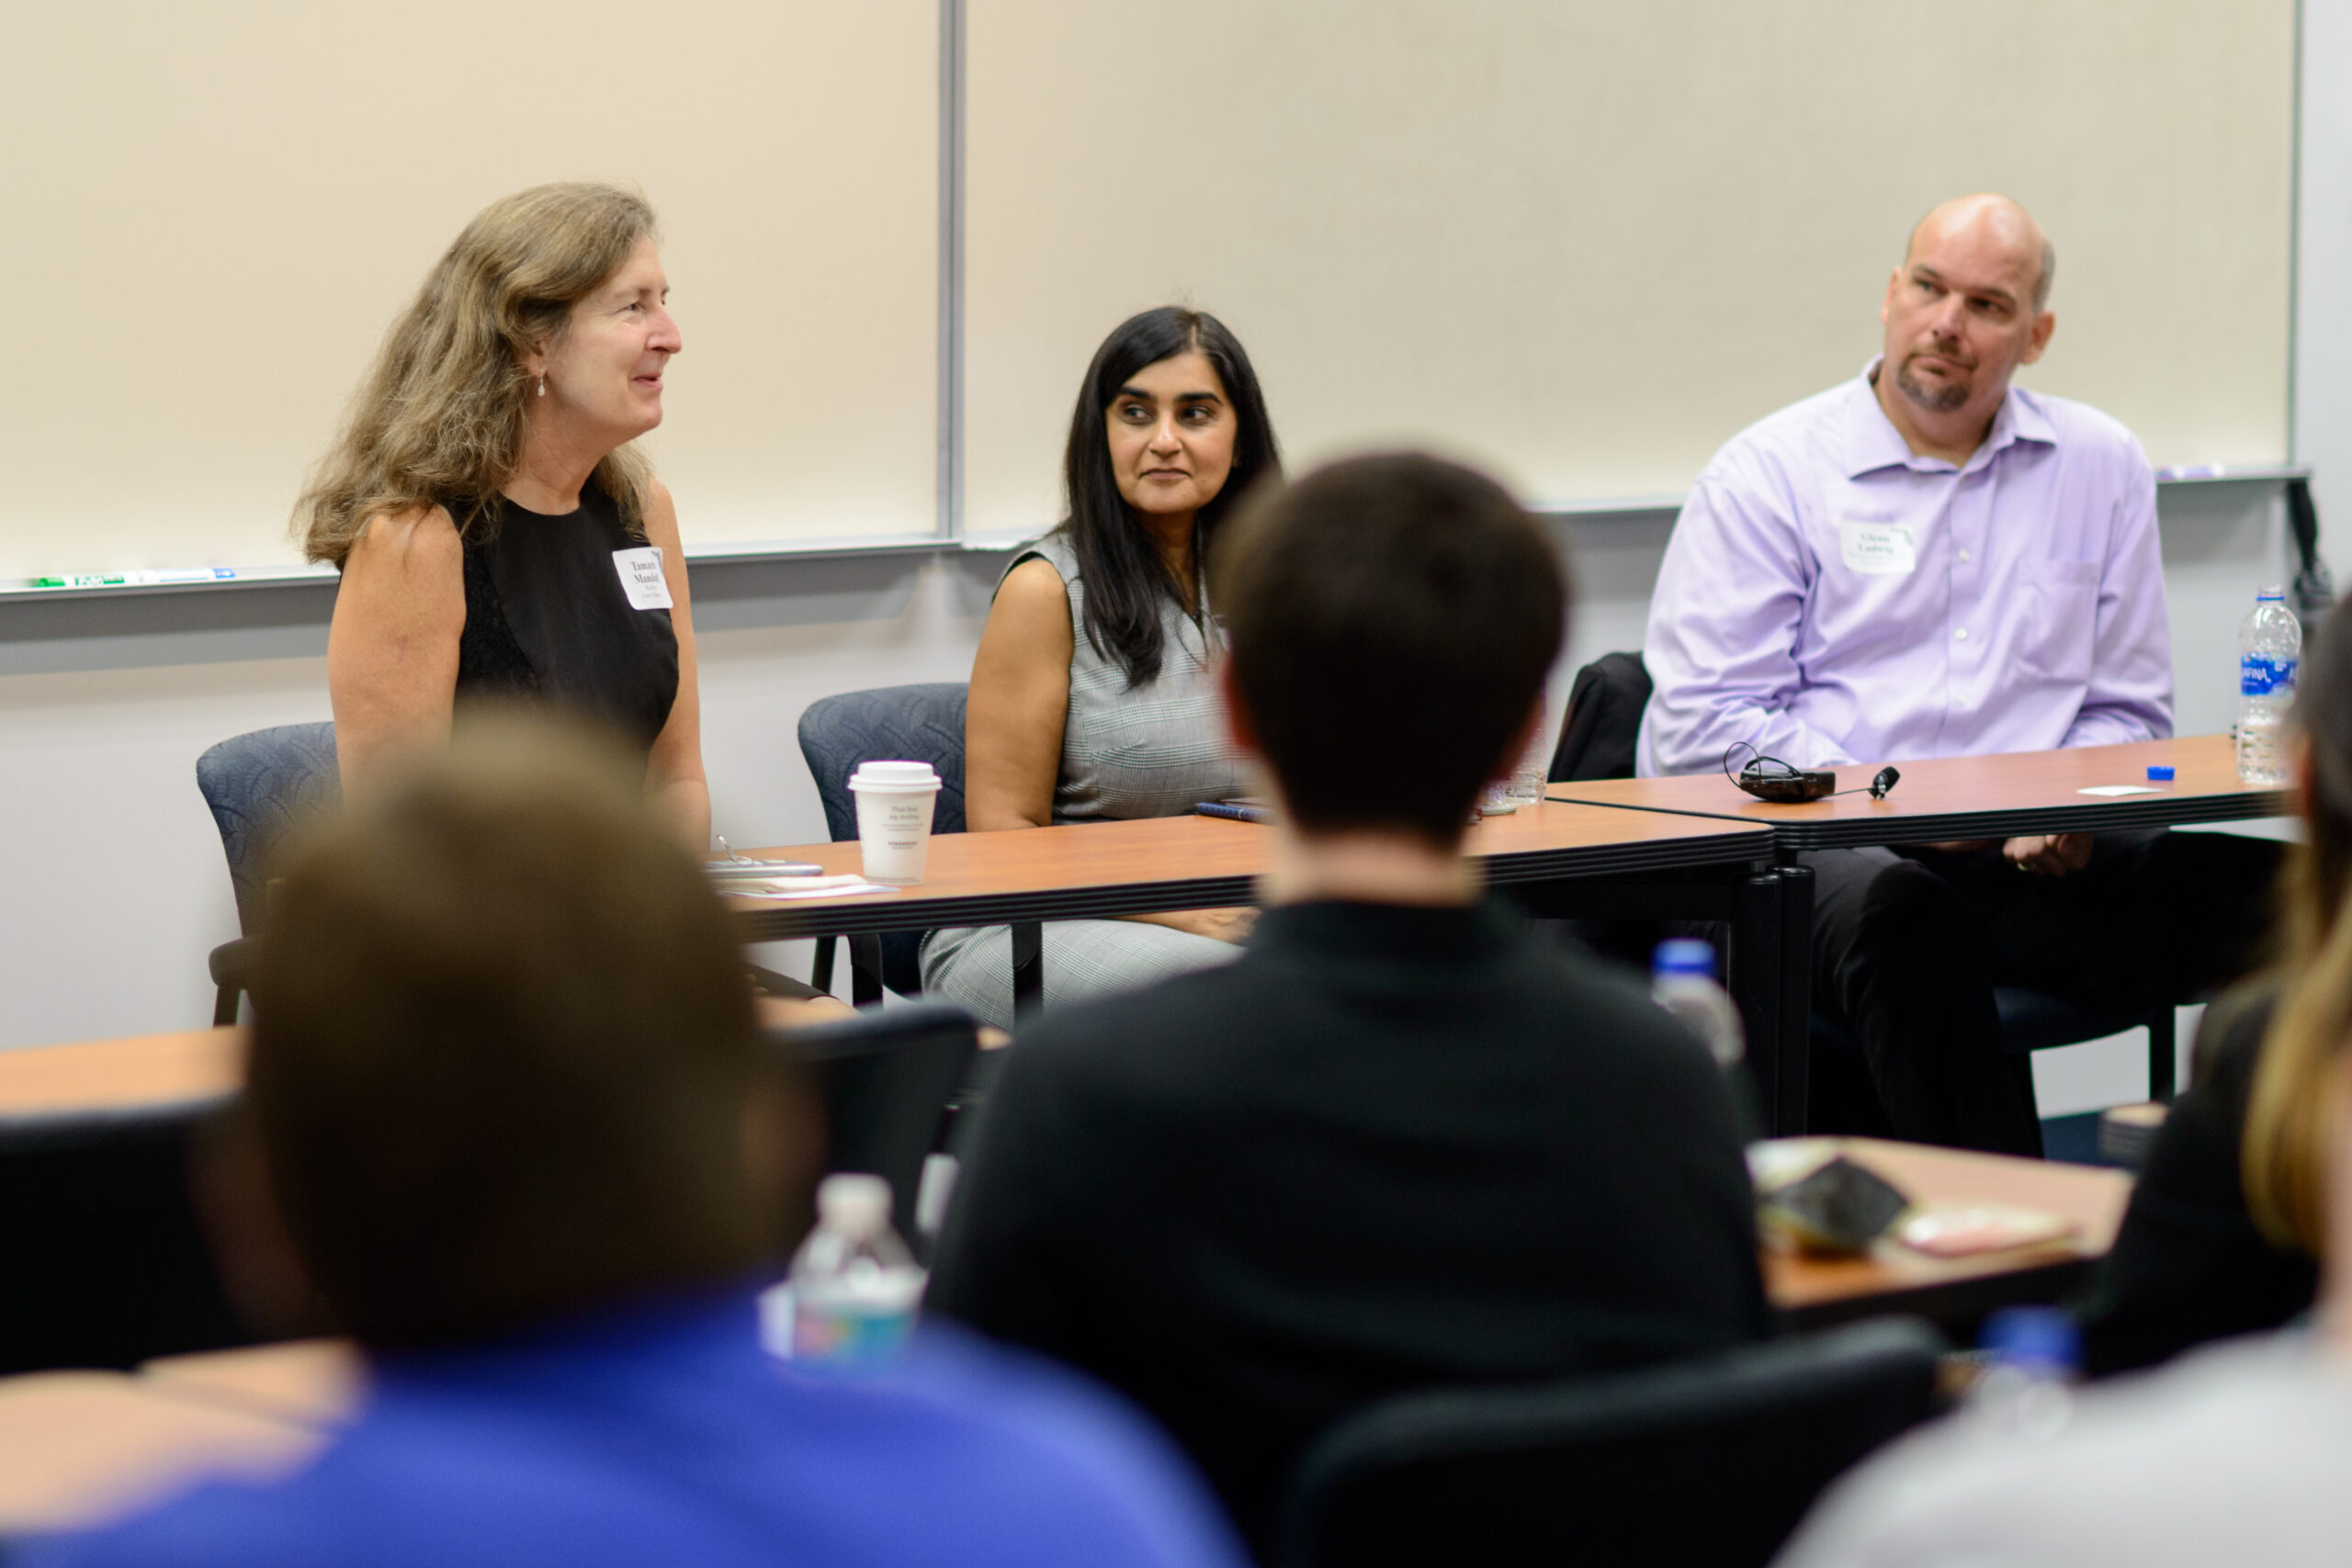 Panelists (left to right) Tamara Mandell, Dr. Zahara Jaffer, and Glenn Ladwig answer a variety of student questions centered around careers outside academia.